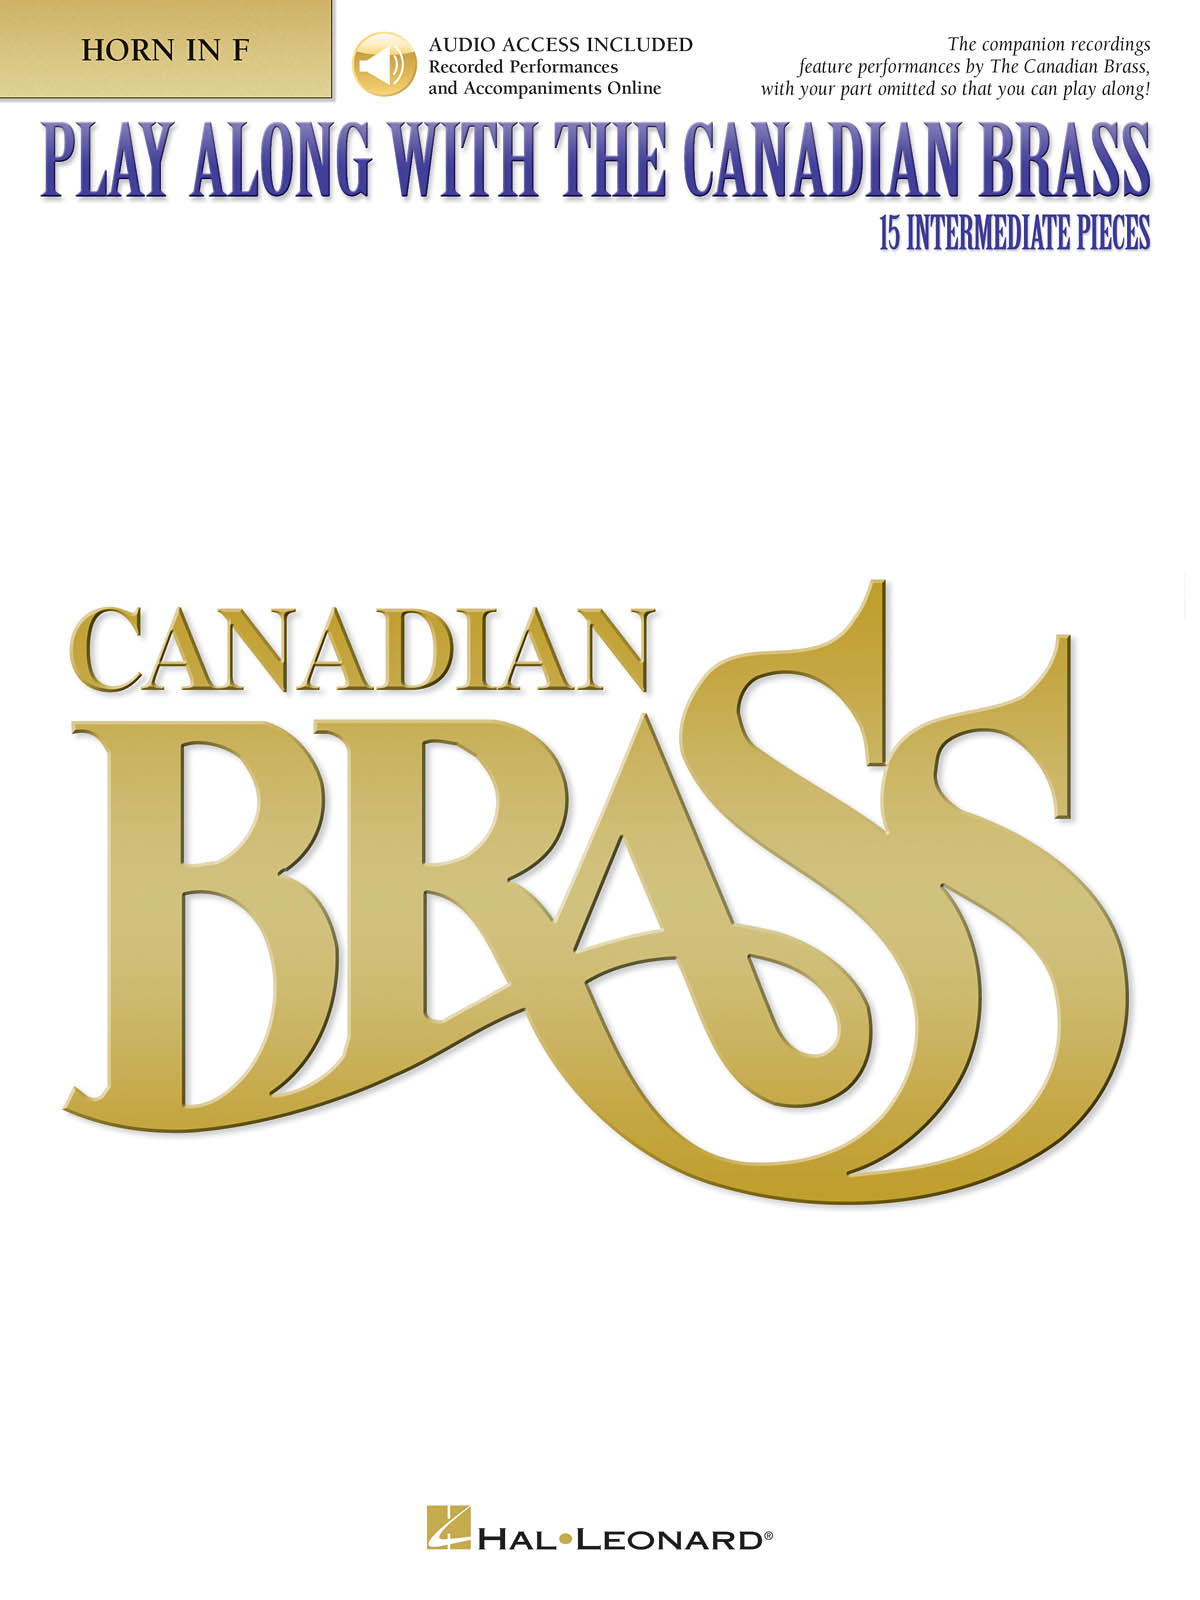 The Canadian Brass: Play Along with the Canadian Brass - Interm. Level: French